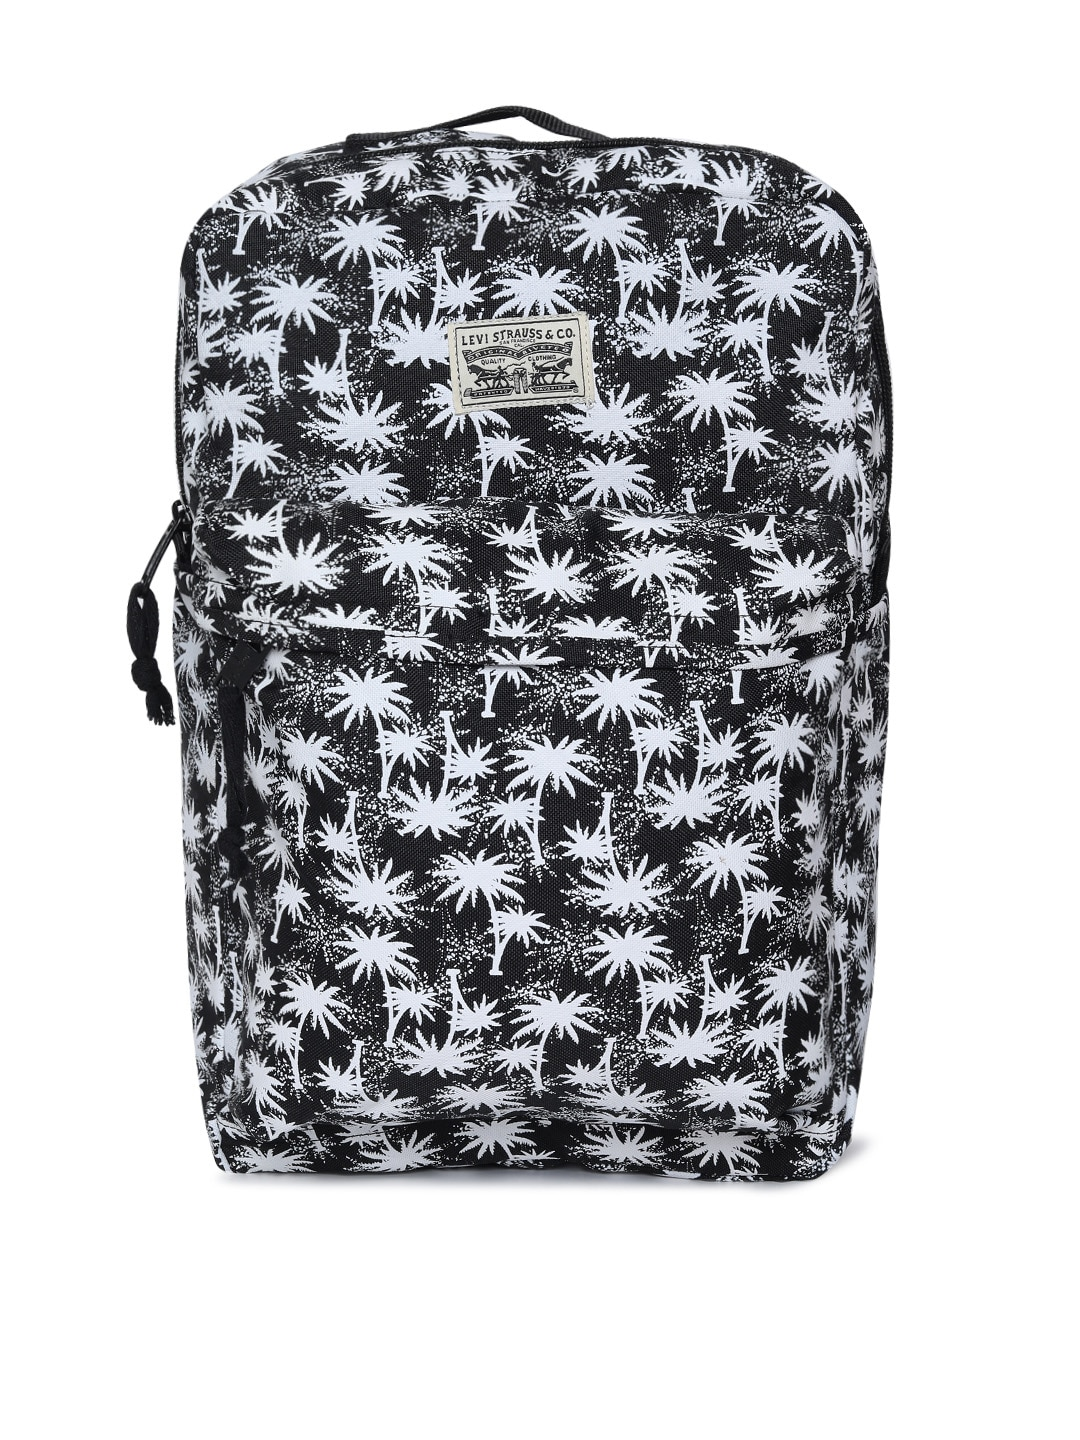 b0562d225f7f Buy Converse Unisex Olive Green   Navy Graphic Print Backpack ...